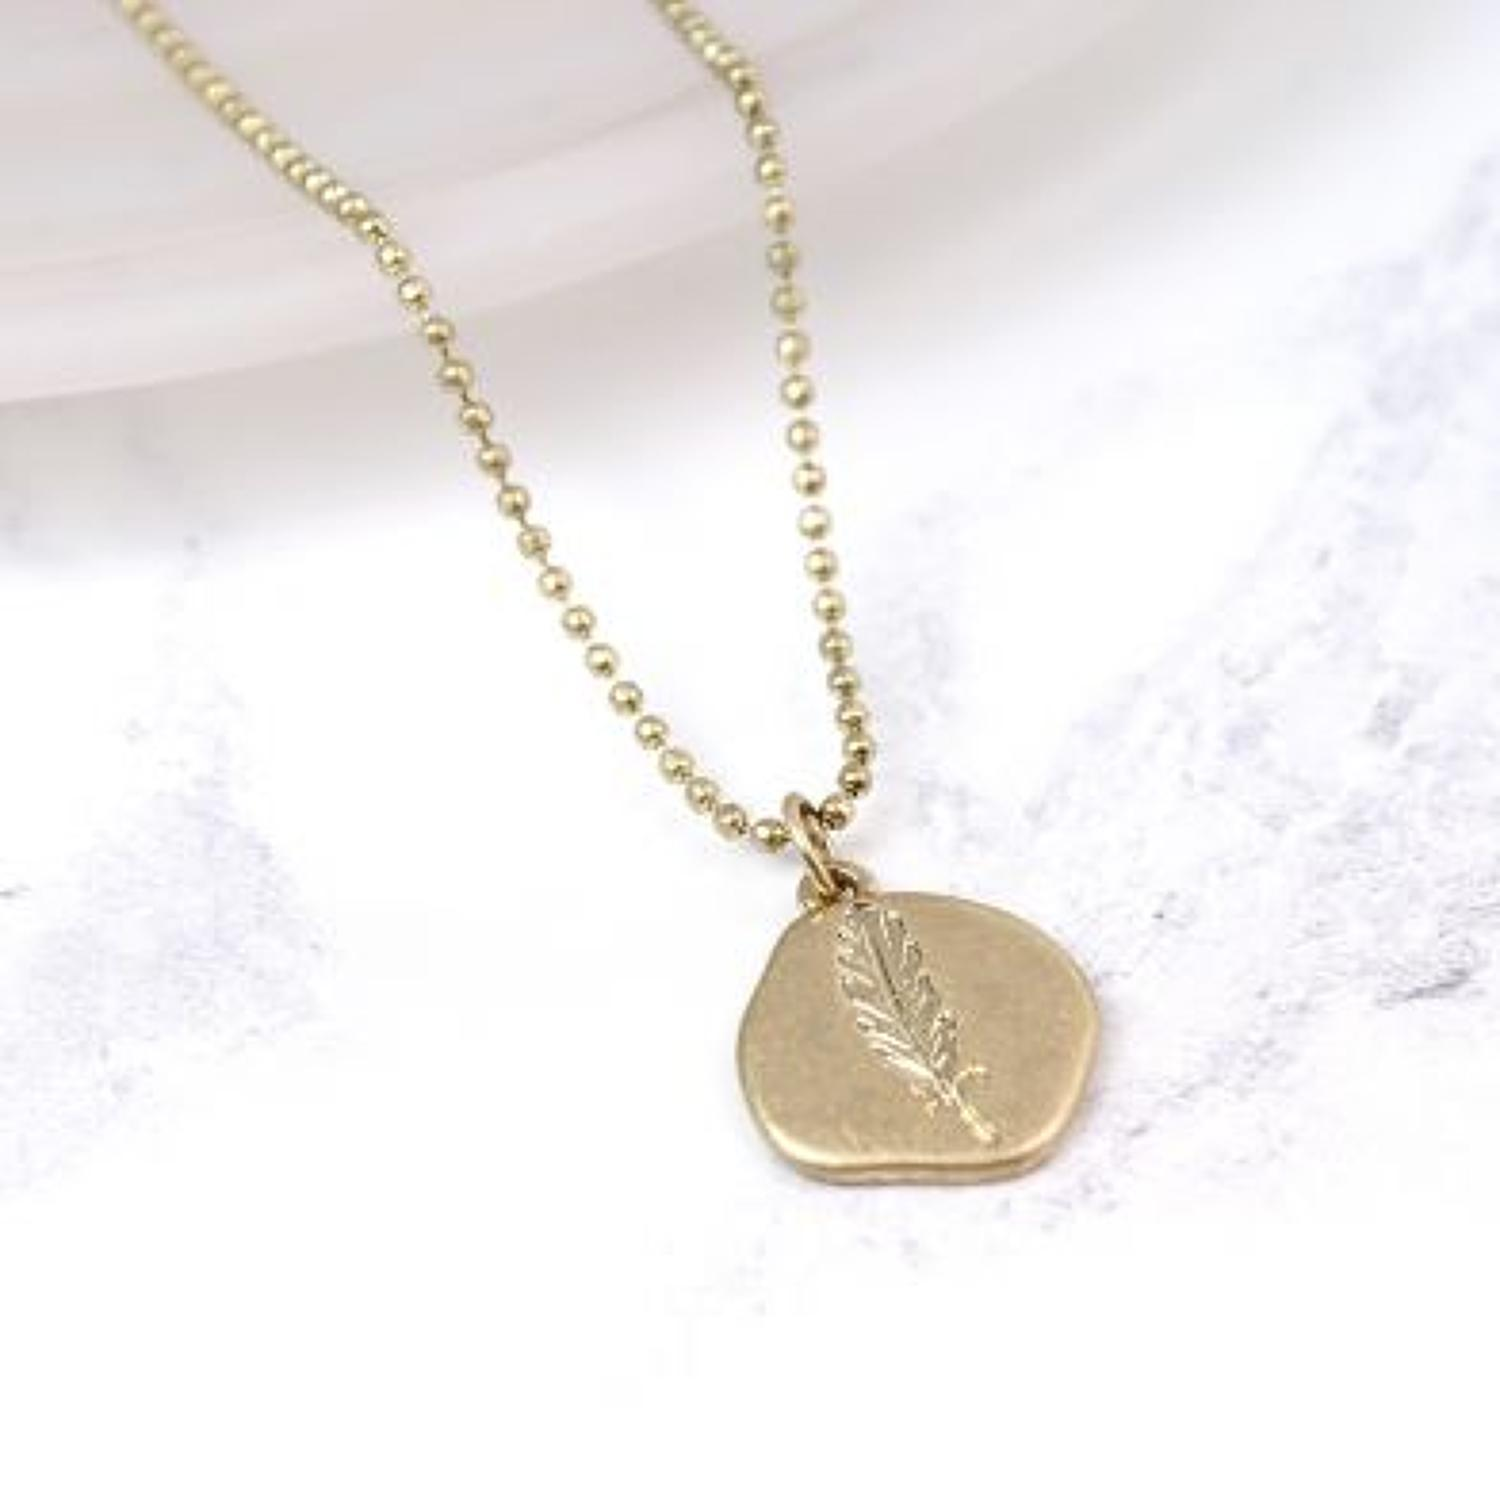 POM - Worn gold organic disc feather necklace